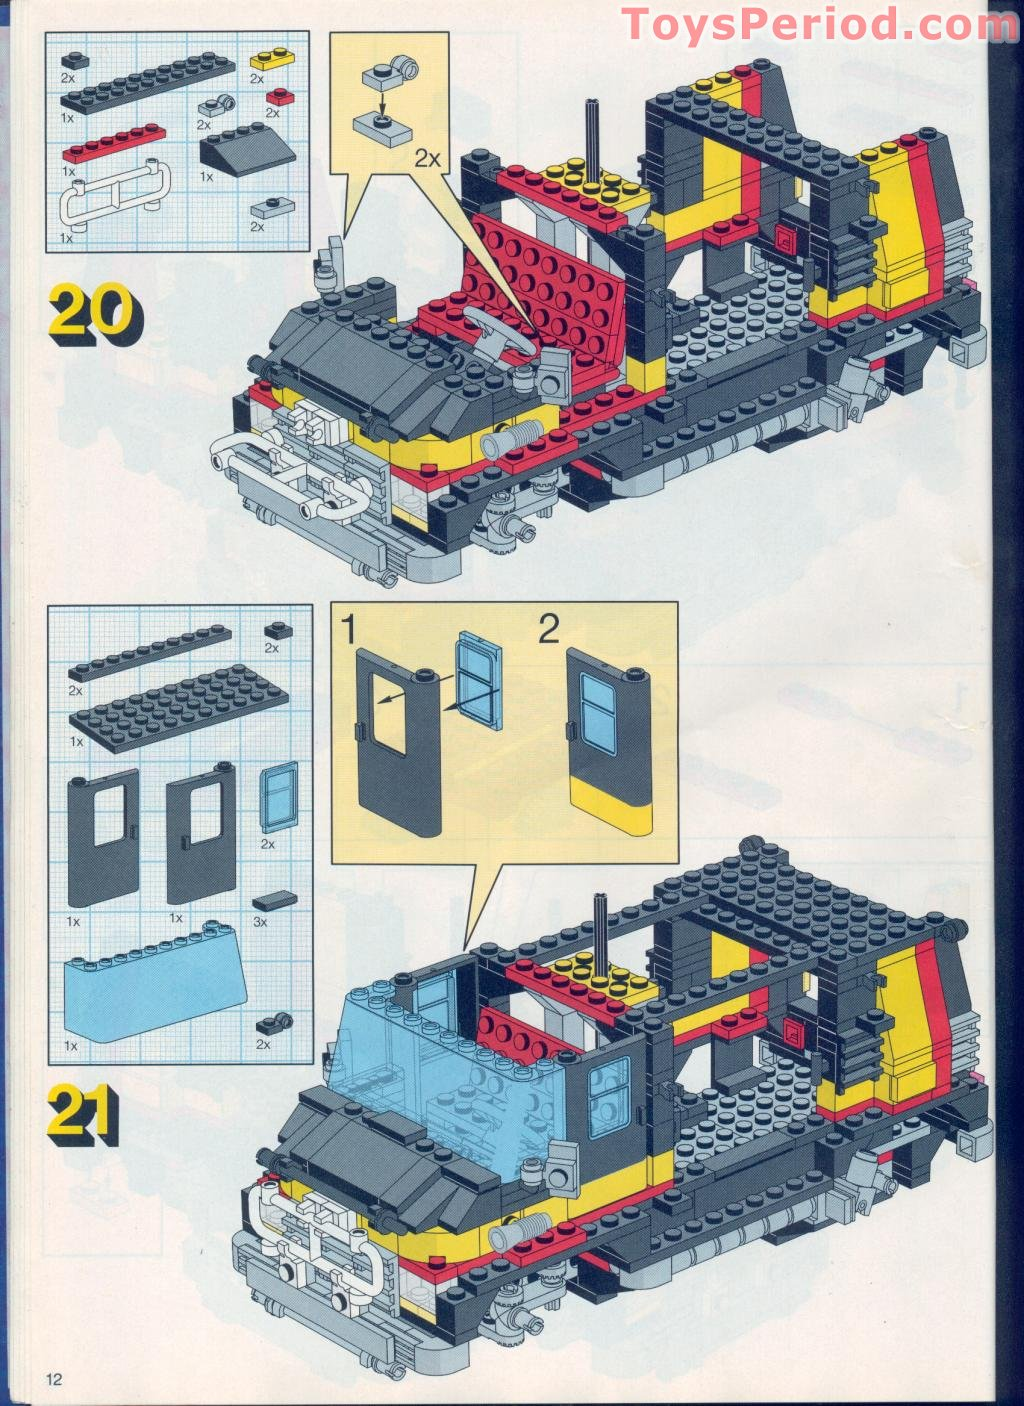 LEGO 5581 Magic Flash Set Parts Inventory and Instructions - LEGO Reference Guide